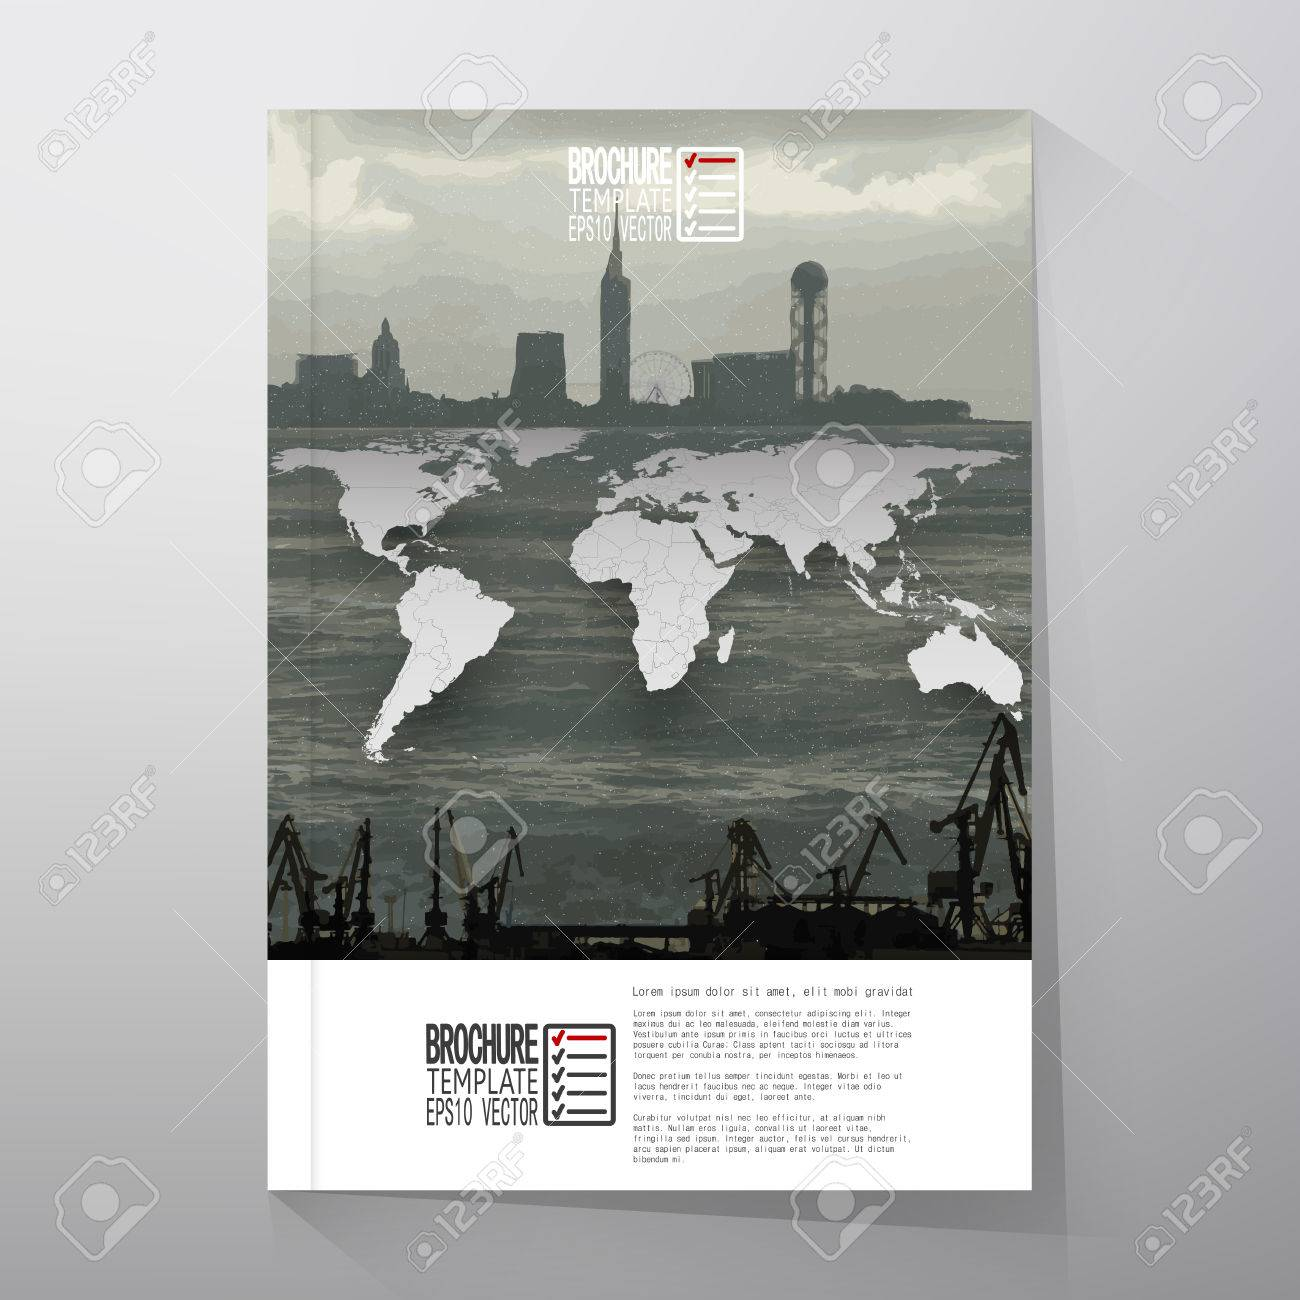 Shipyard and city landscape world map vector brochure flyer shipyard and city landscape world map vector brochure flyer or report for business gumiabroncs Images